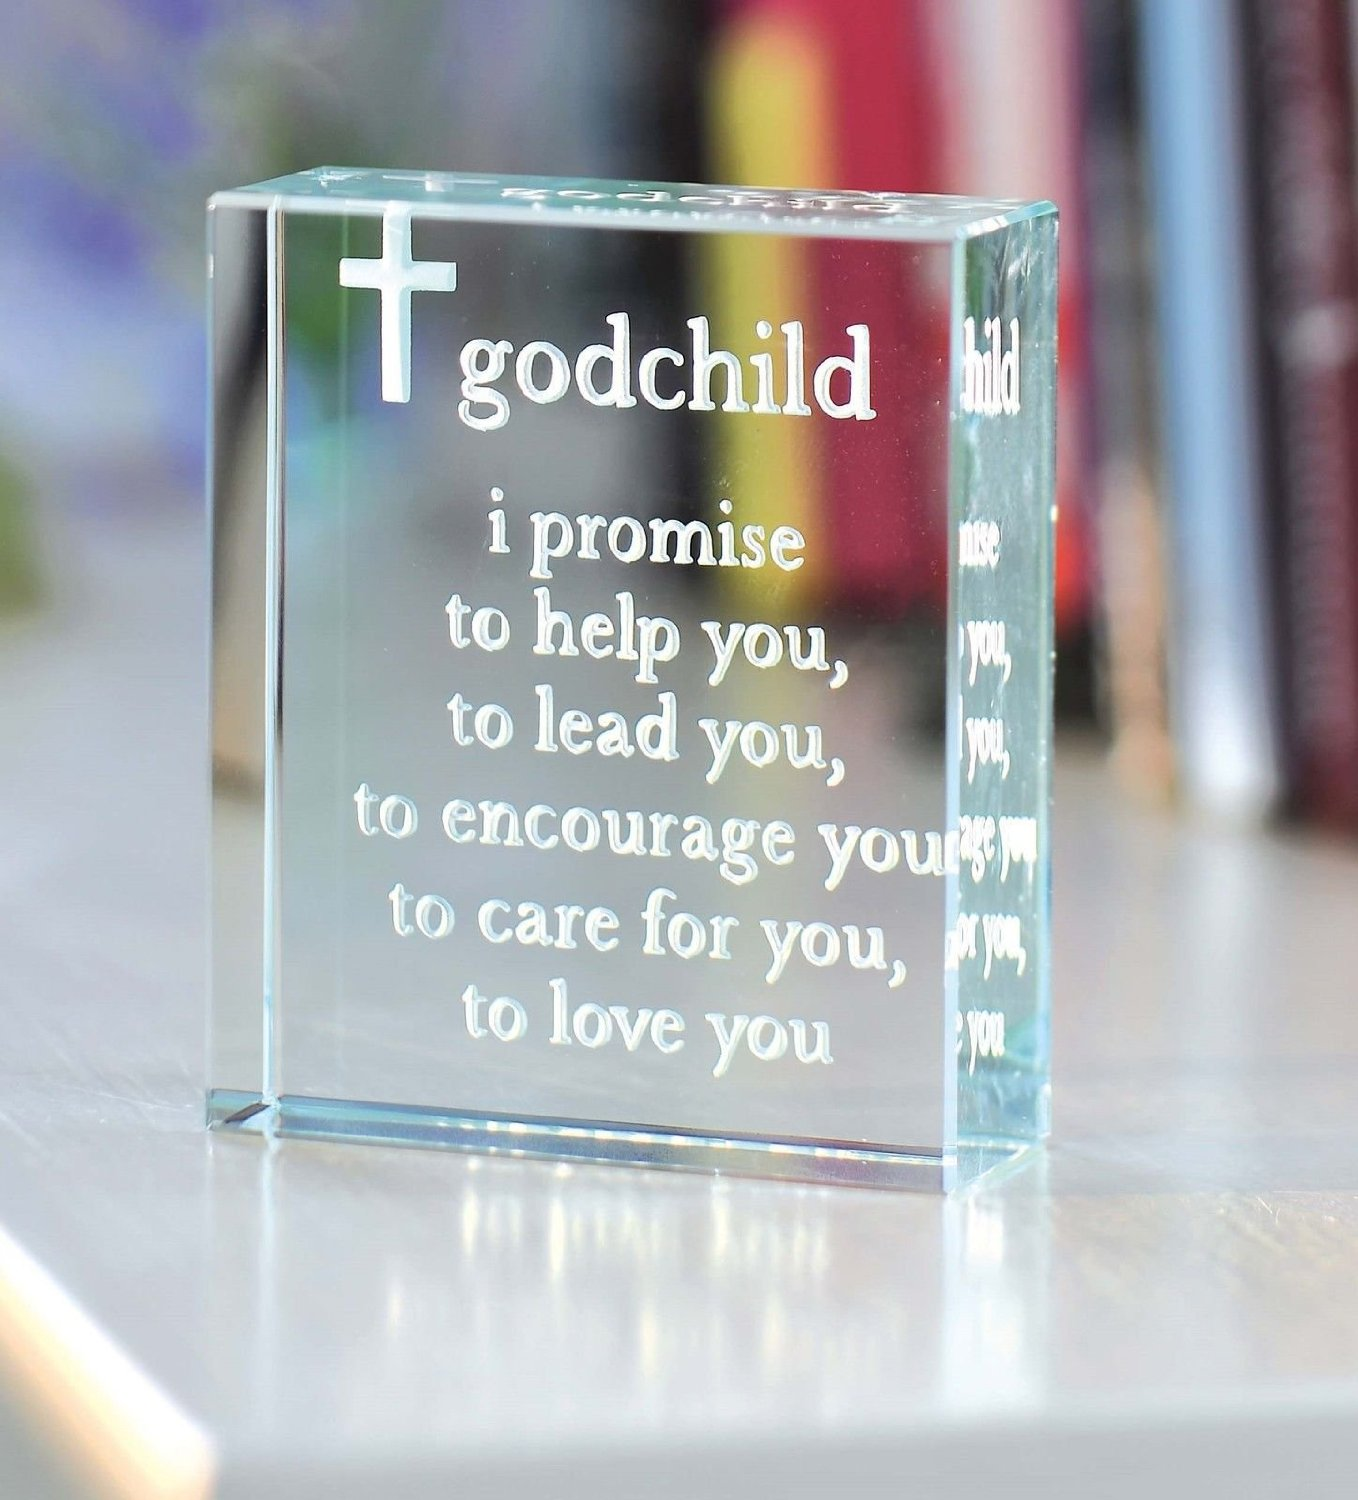 Spaceform Christening Gift Ideas Glass Keepsake Godchild Godparent Baptism